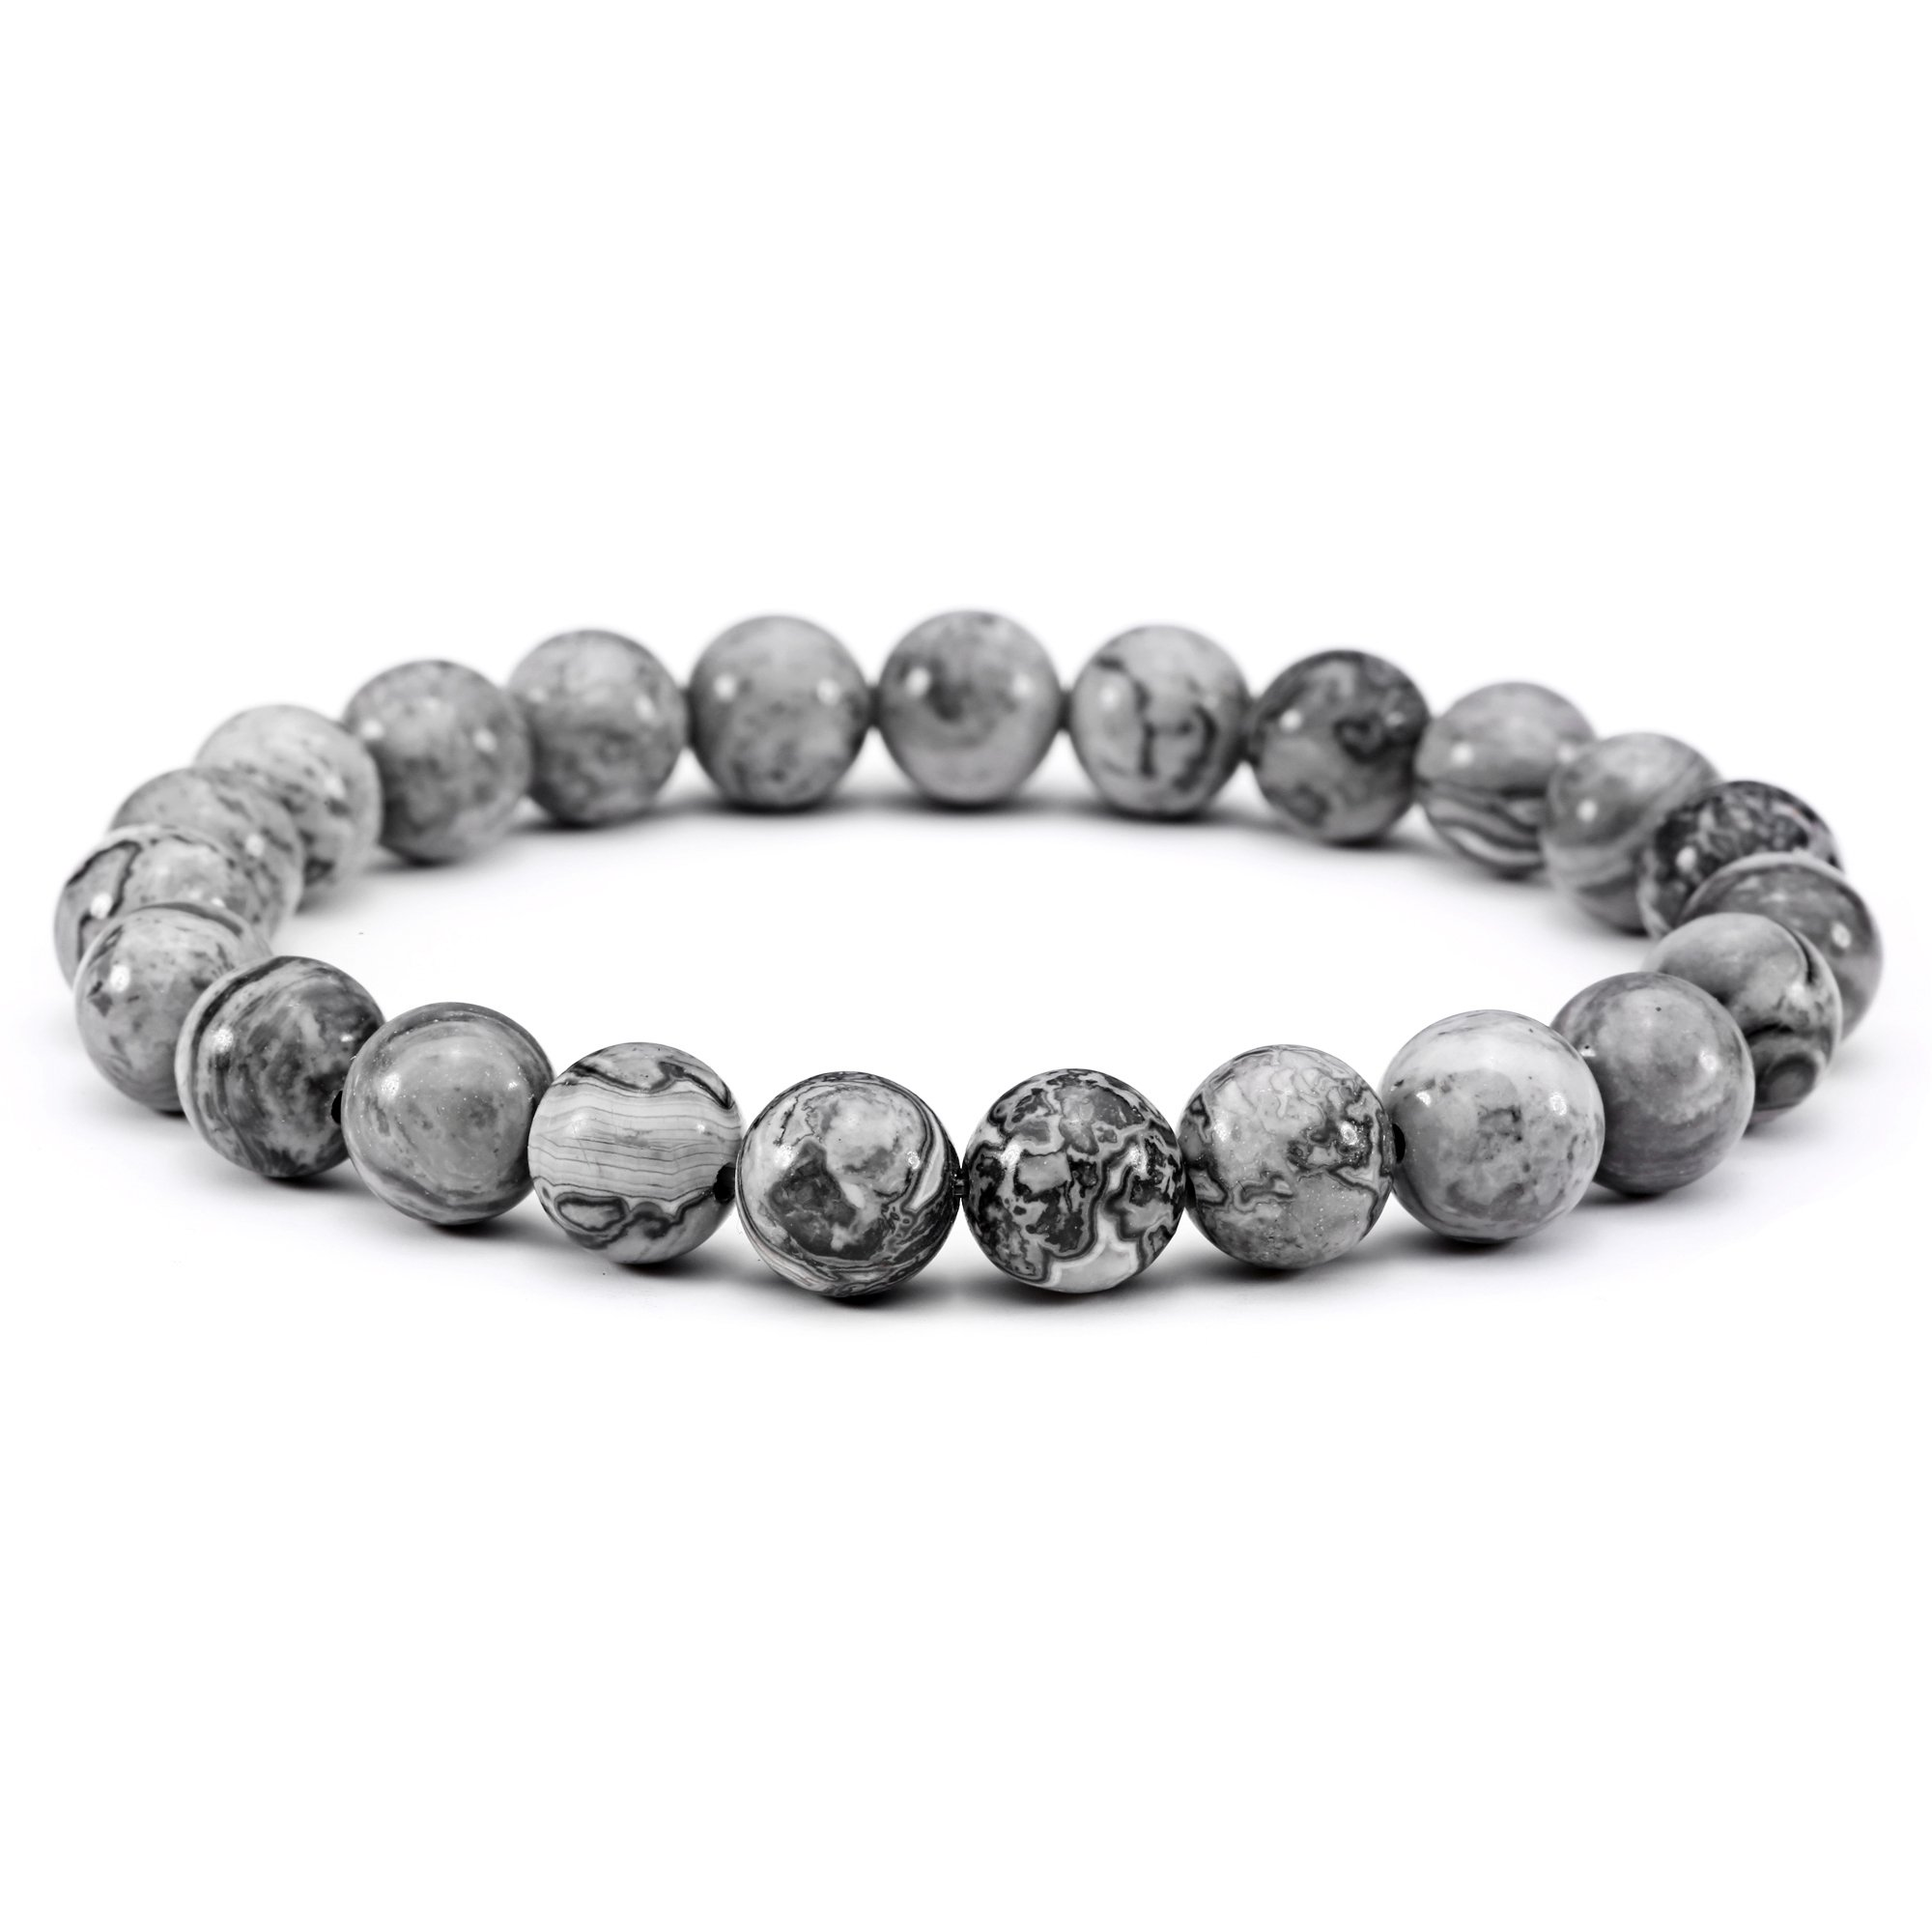 Jade cabbage Men Bracelets Natural Stone Healing Energy Balance Beads (8mm) Gray Stretch 7.5''